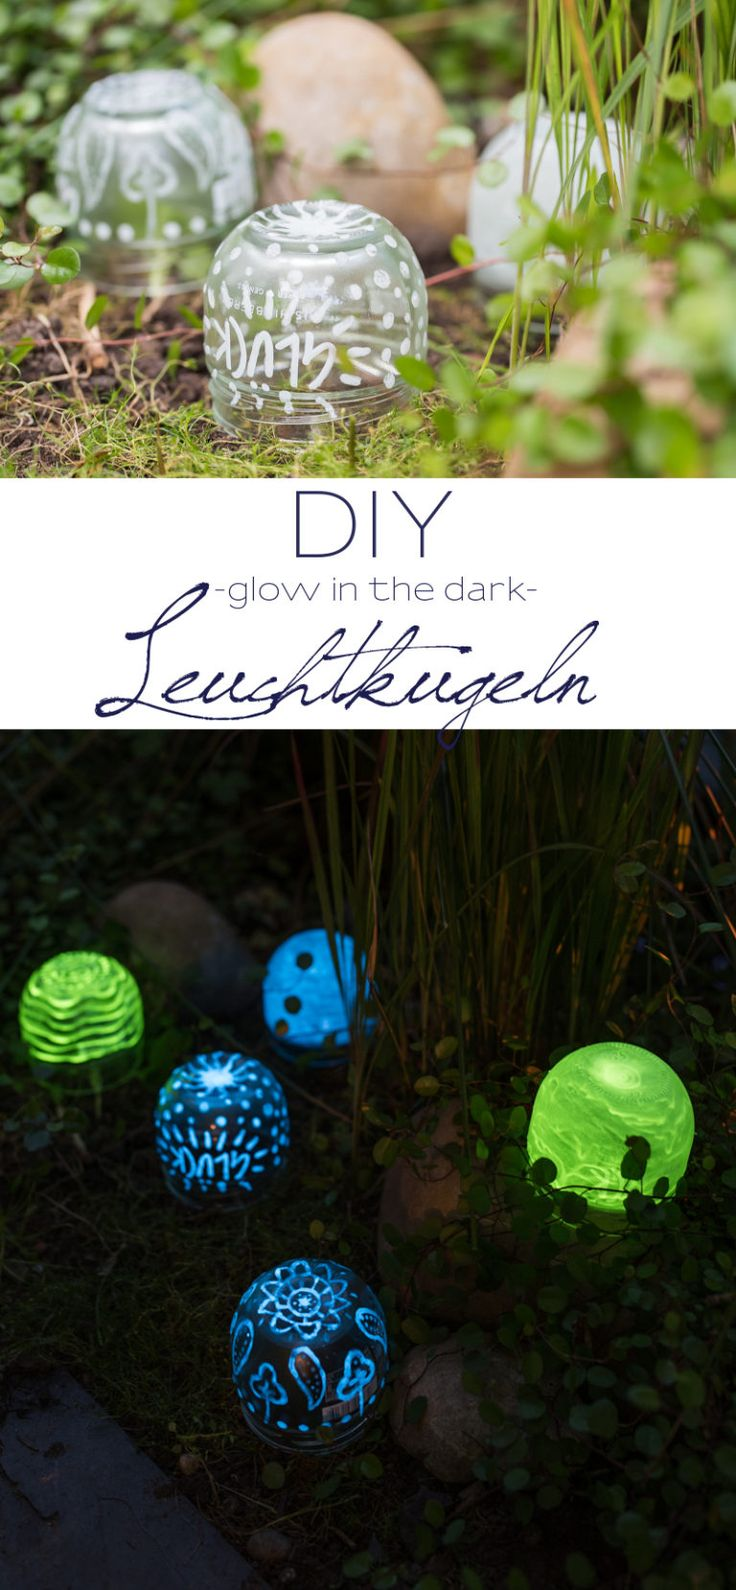 DIY upcycling glow in the dark flares of jam jars as decoration for ...